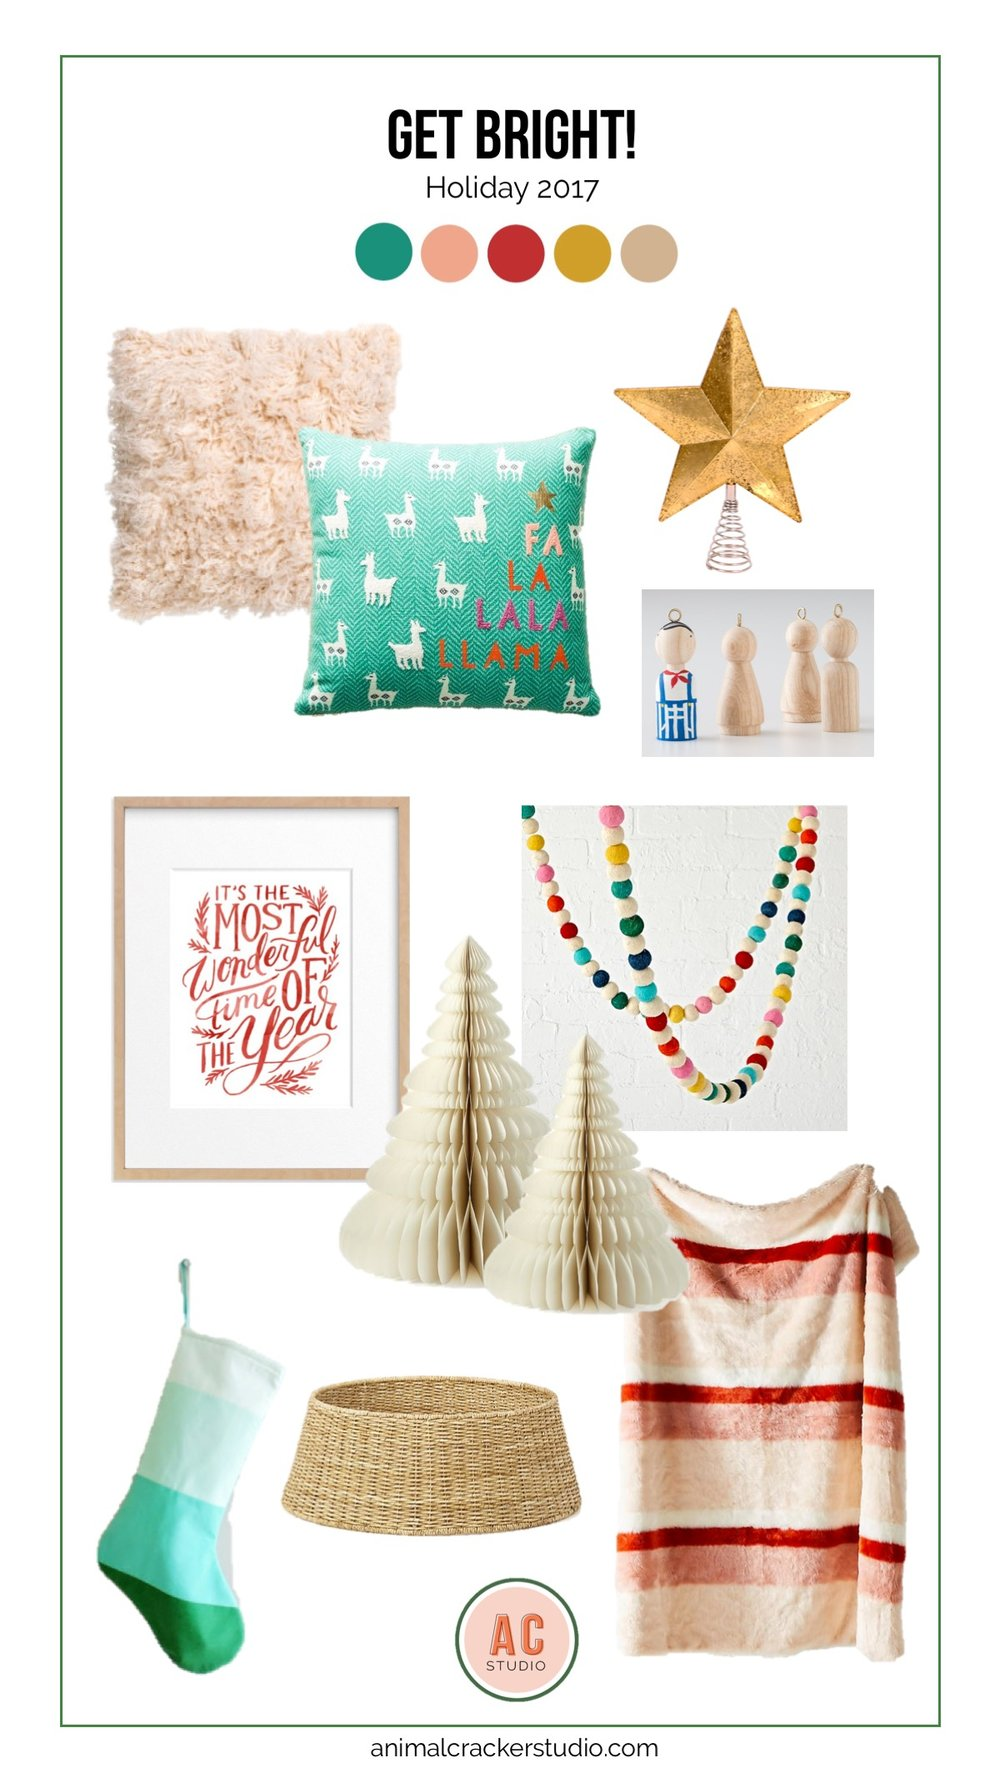 Sources (P.S. there are a couple of affiliate links here, just saying!):  Pink fuzzy pillow ,  llama pillow  (this says no longer available but check your local store because I just saw them last week),  star topper ,  DIY ornament kit ,  felt garland ,  fuzzy throw ,  basket tree collar ,  stocking ,  paper trees ,  wonderful print .